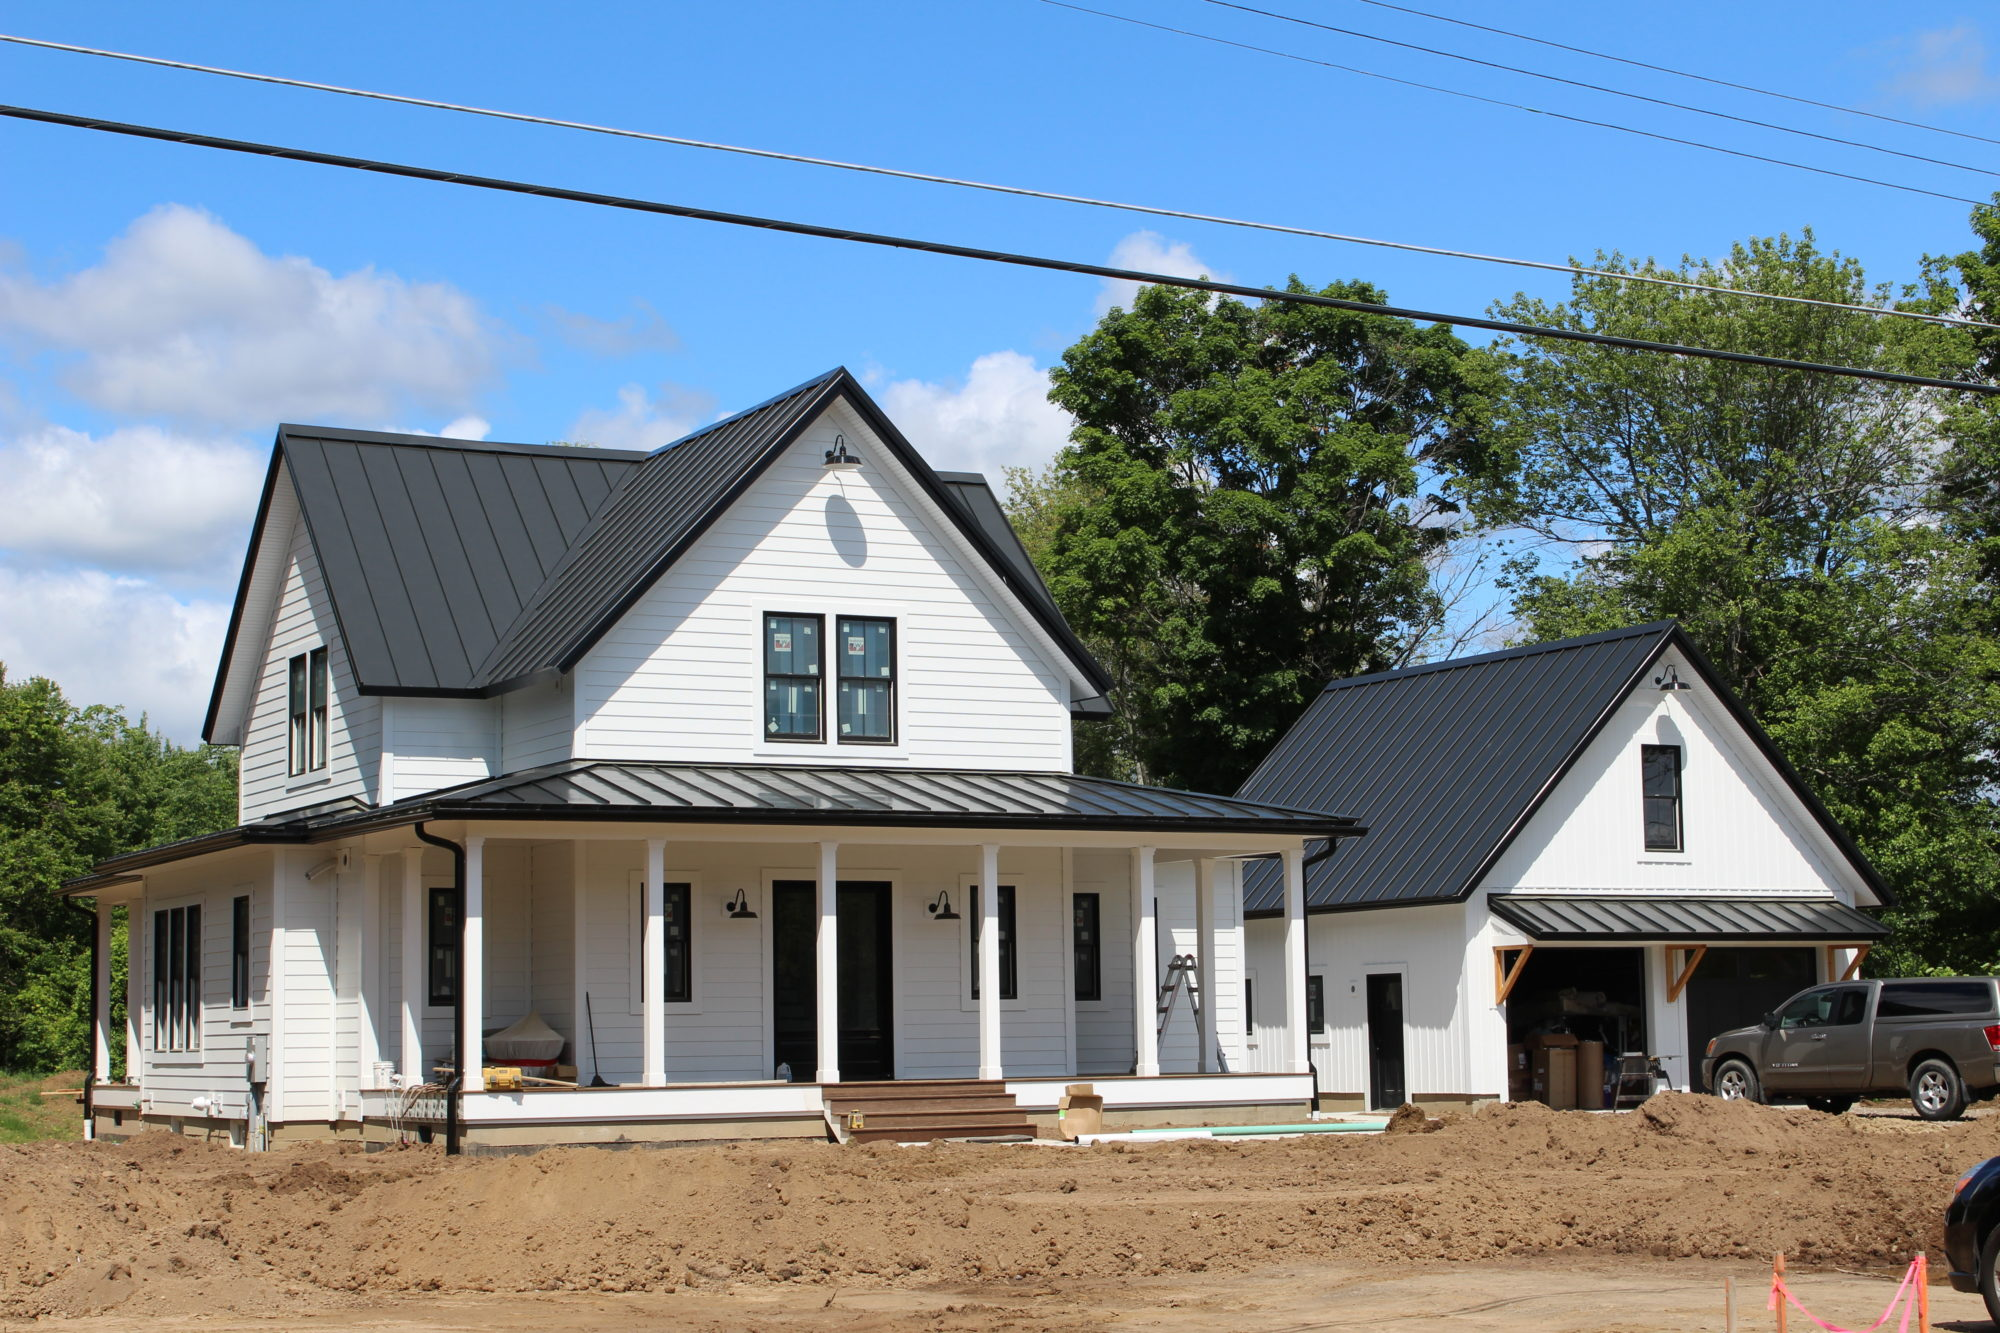 Paradis Remodeling and Building built a new Modern Farmhouse in Suffield, CT